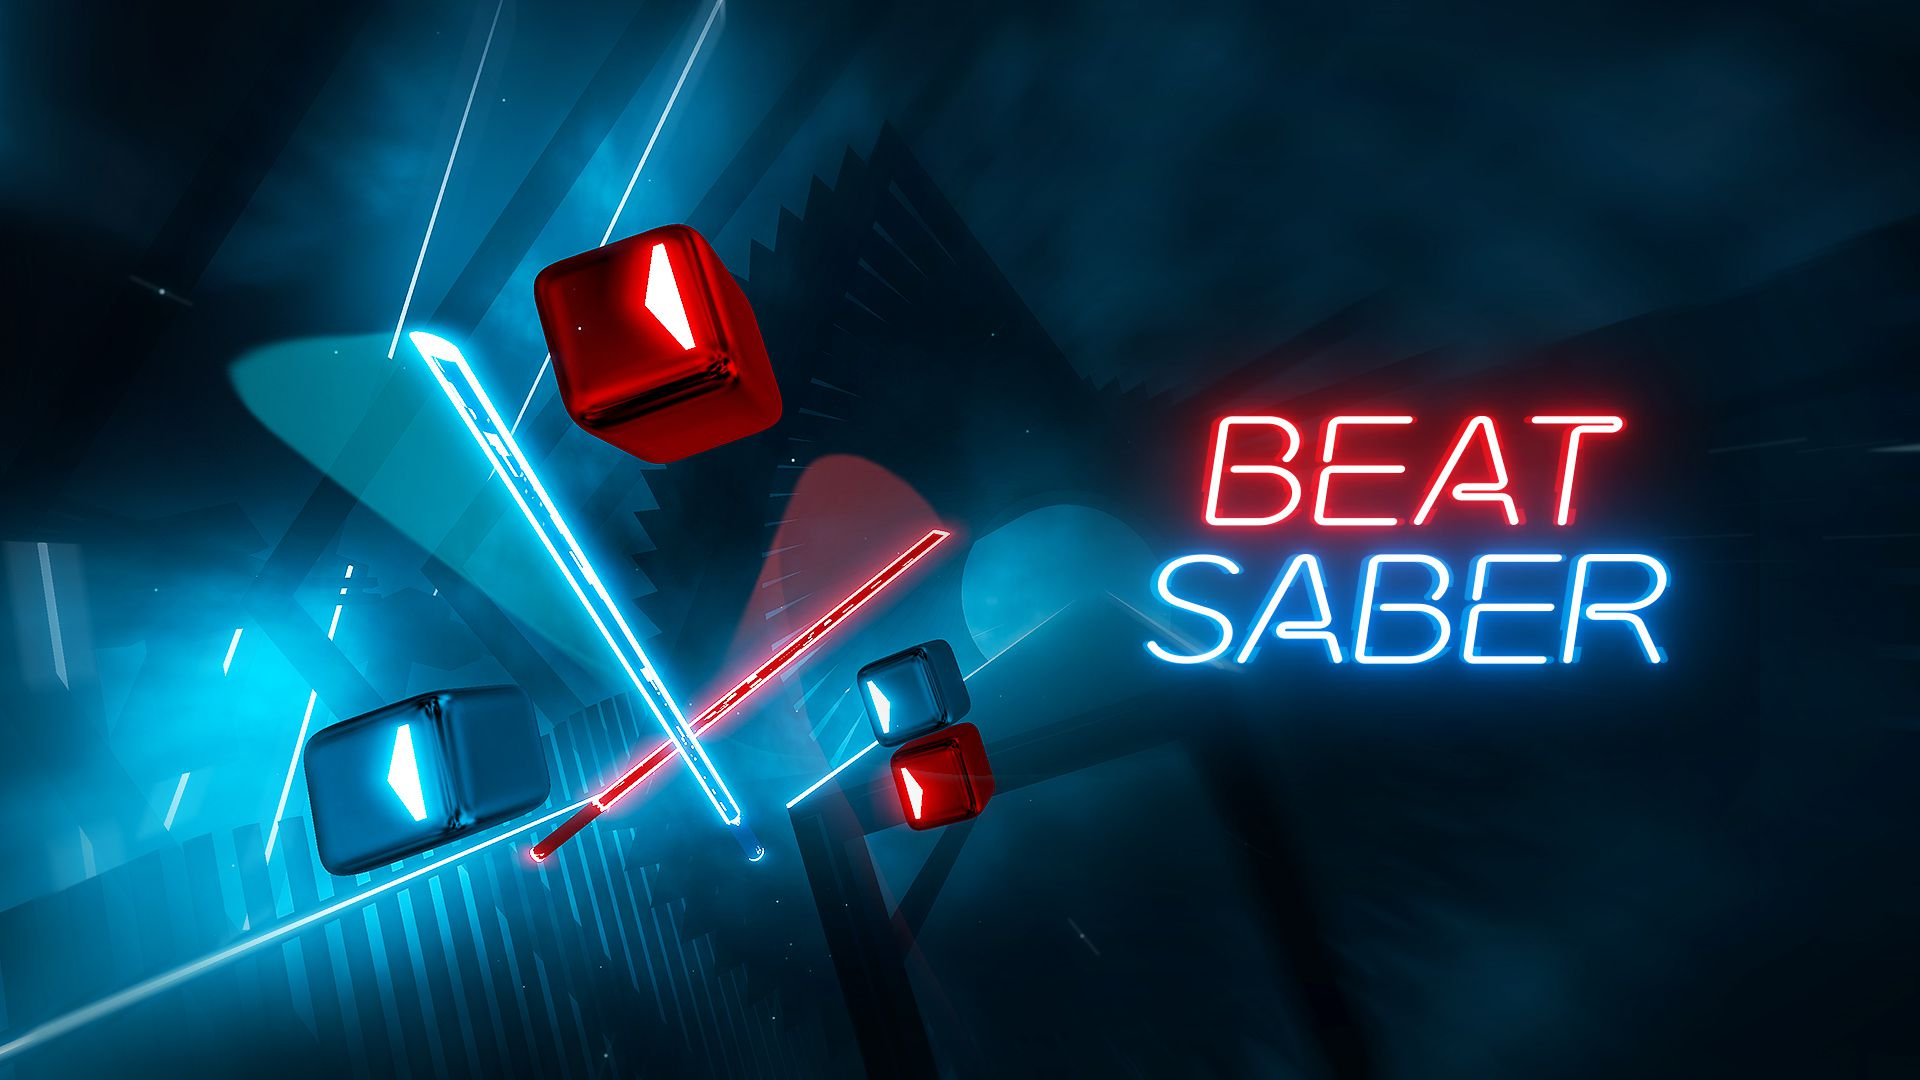 A promotional image for Beat Saber